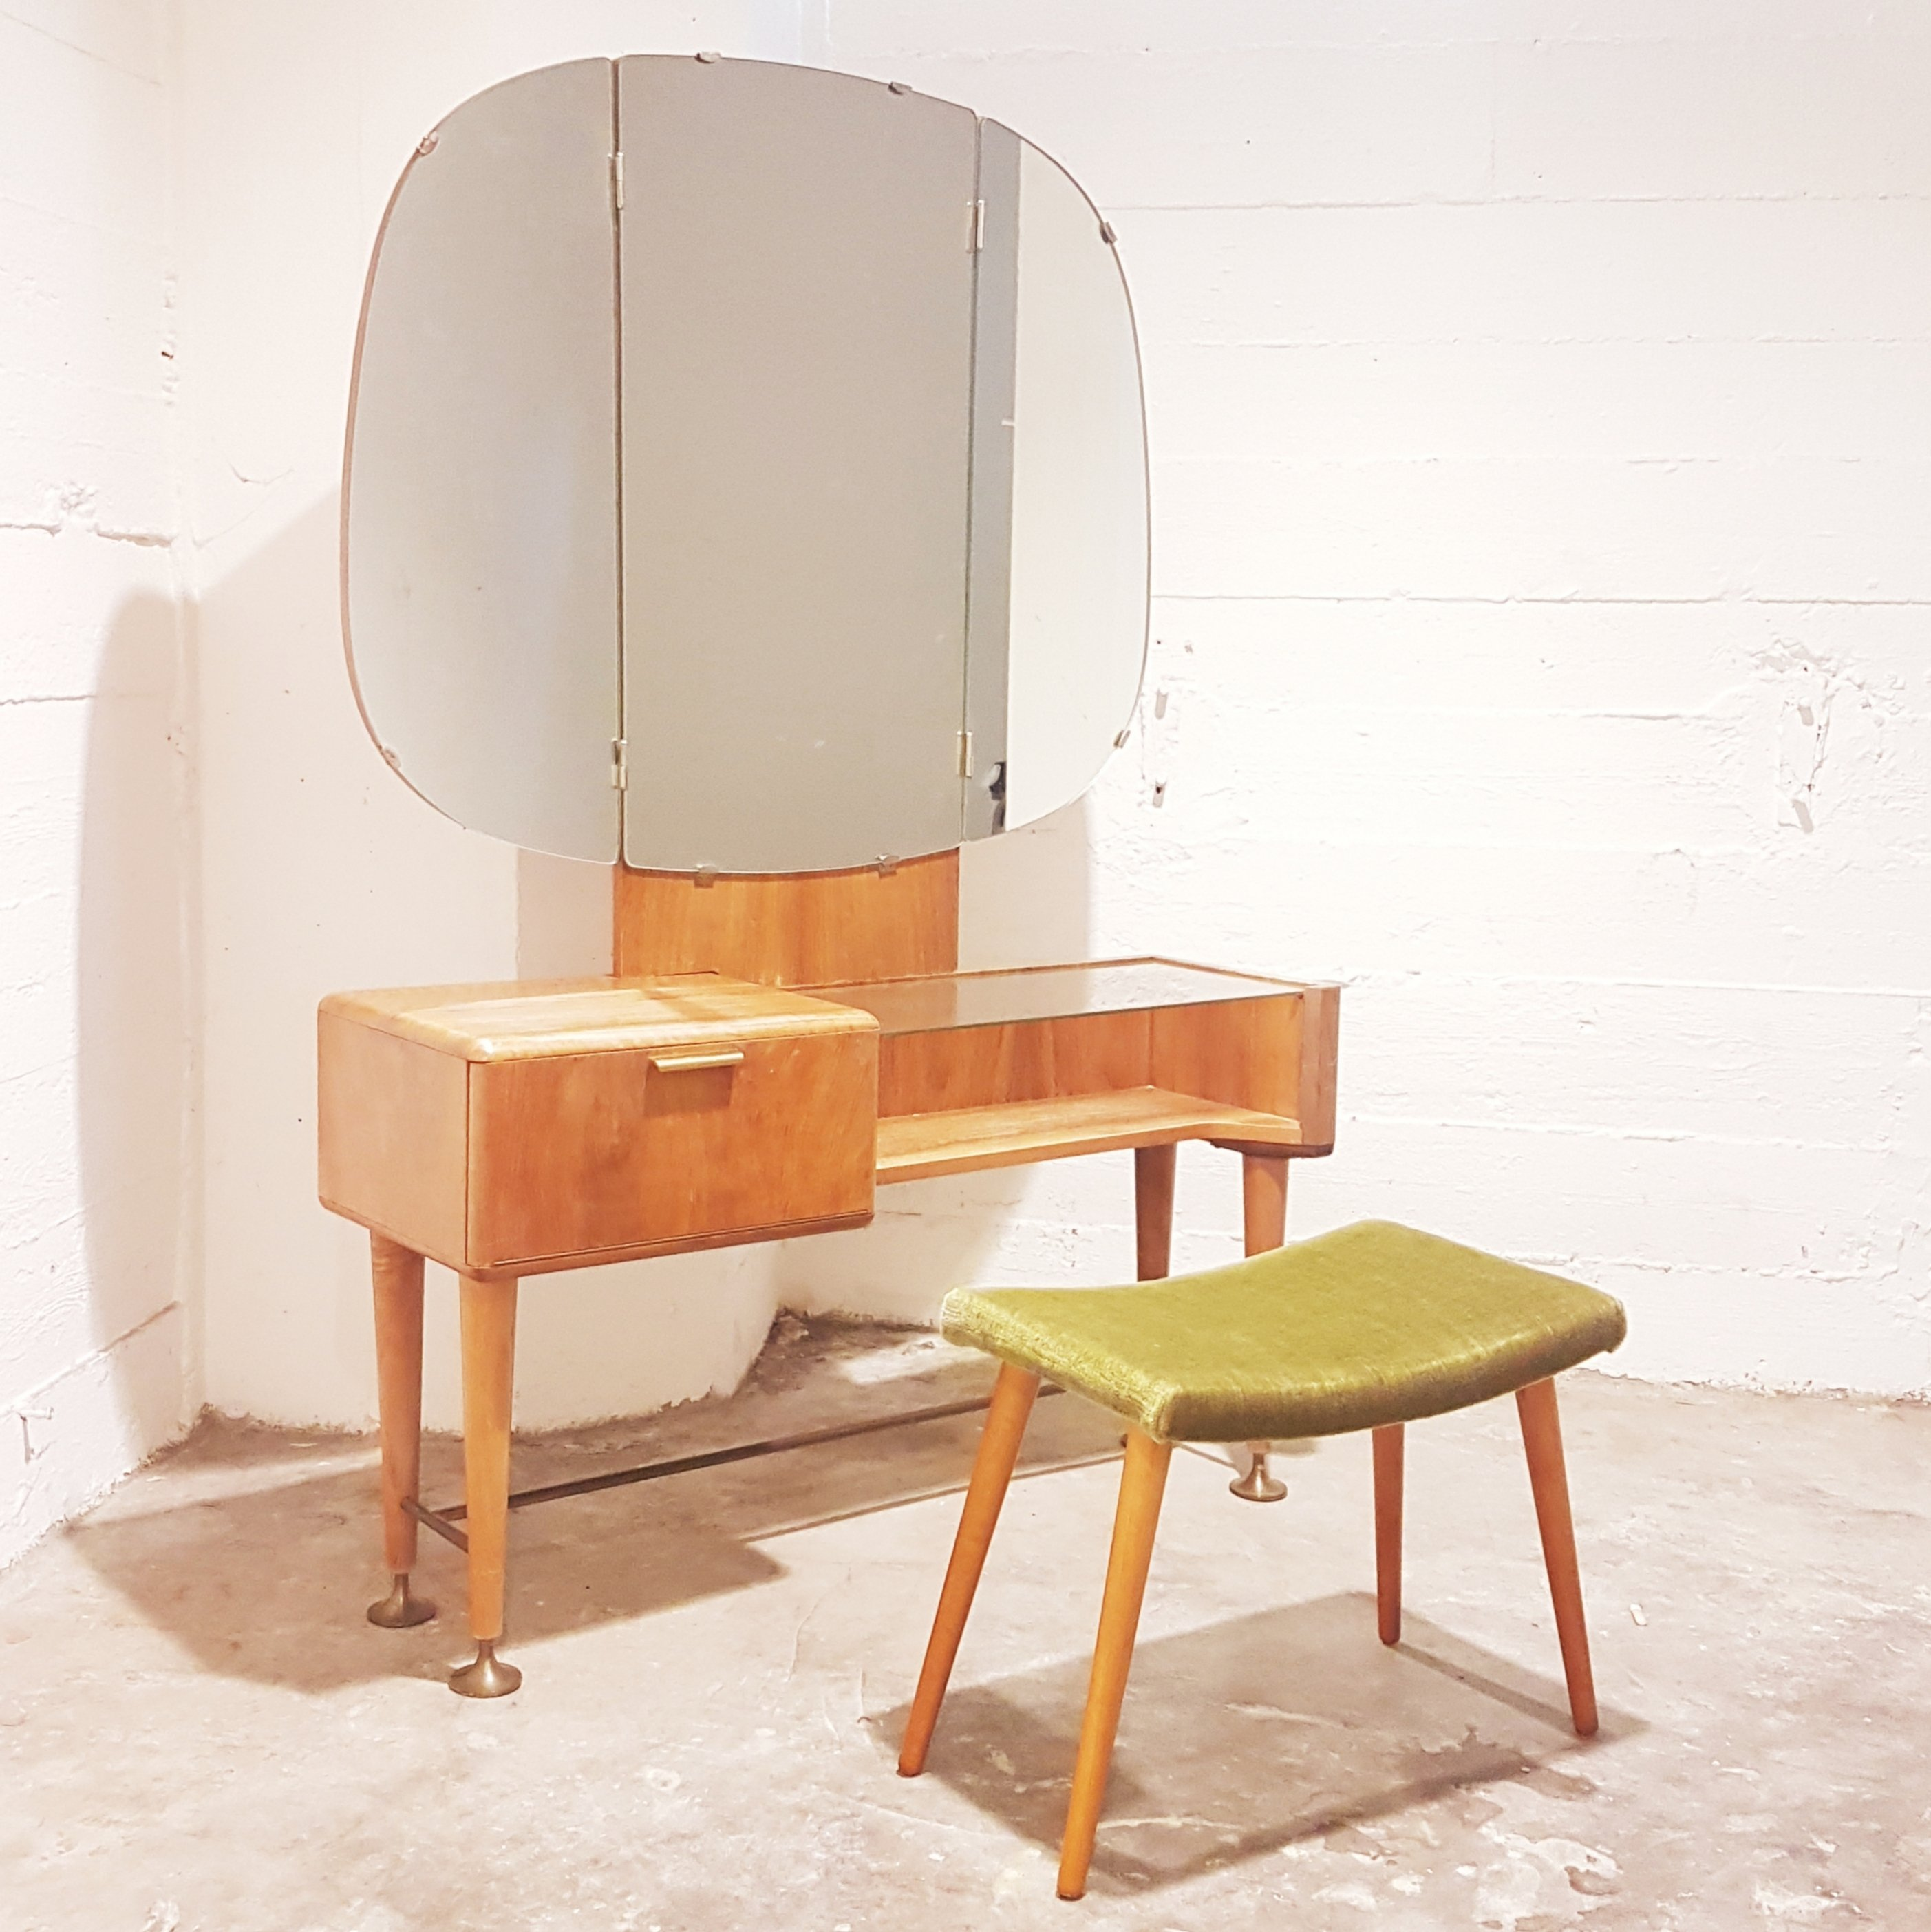 Rare Walnut Mid Century Modern Vanity Dressing Table Stool By A A Patijn For Zijlstra Joure 1950s 143052